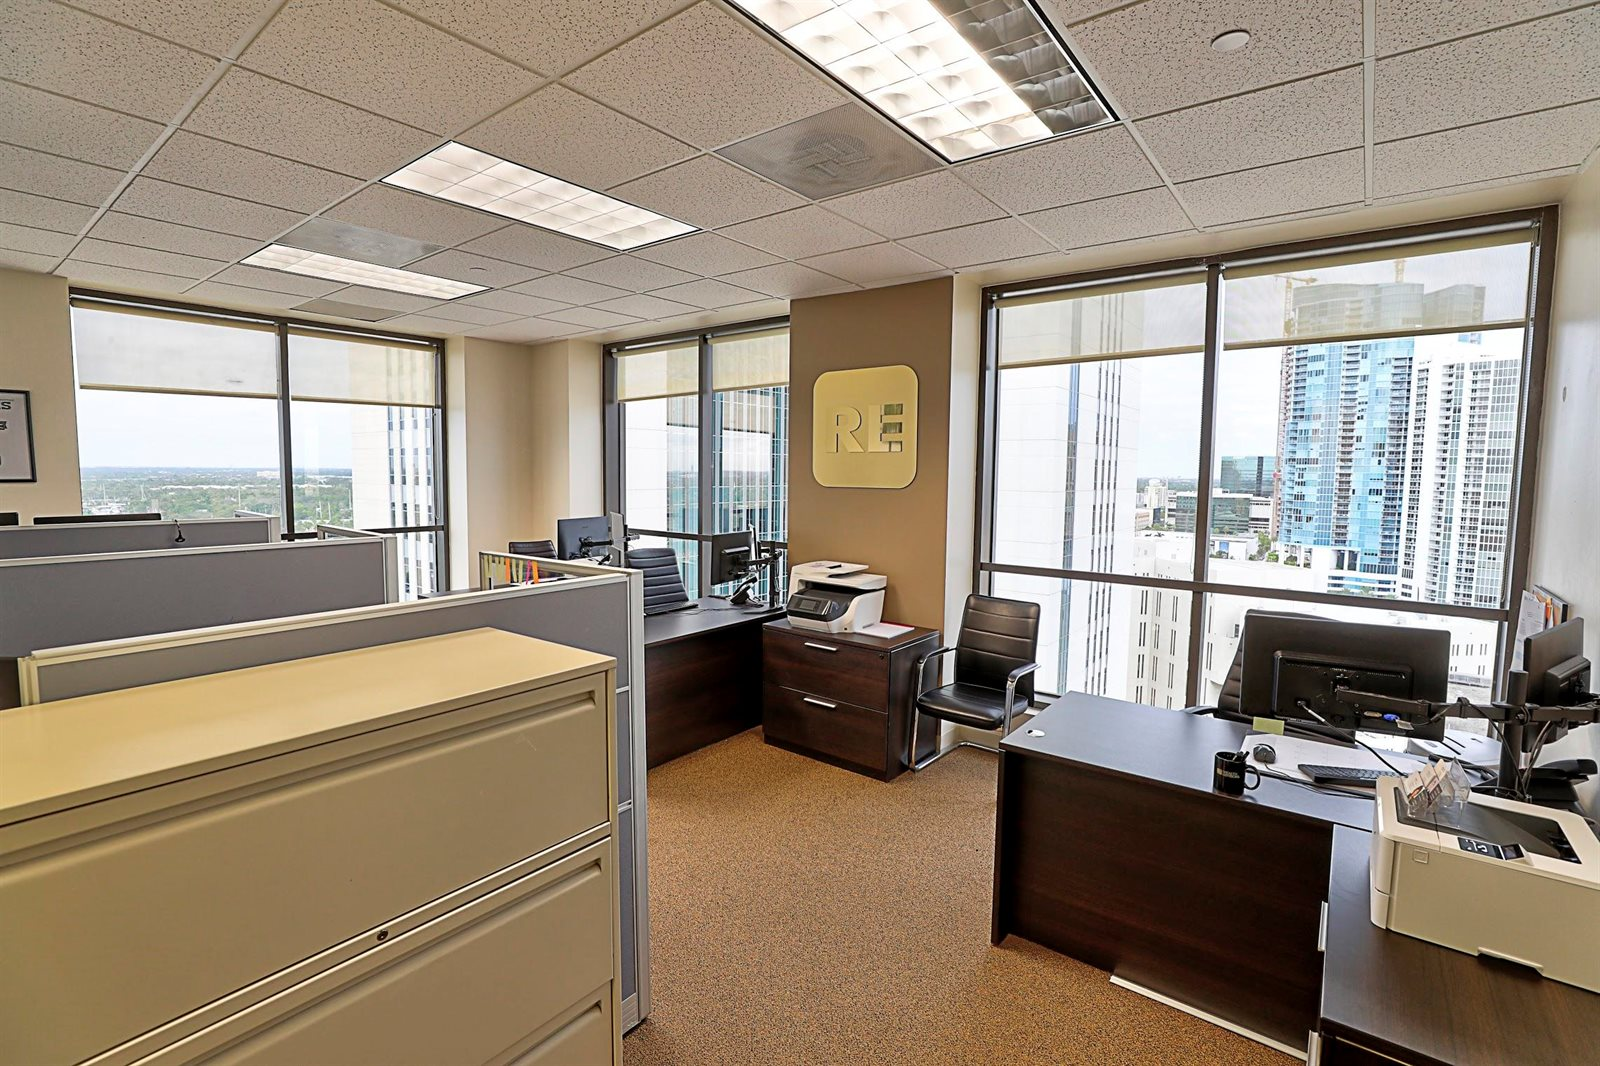 110 SE 6th Street, #17th Floor, Fort Lauderdale, FL 33301